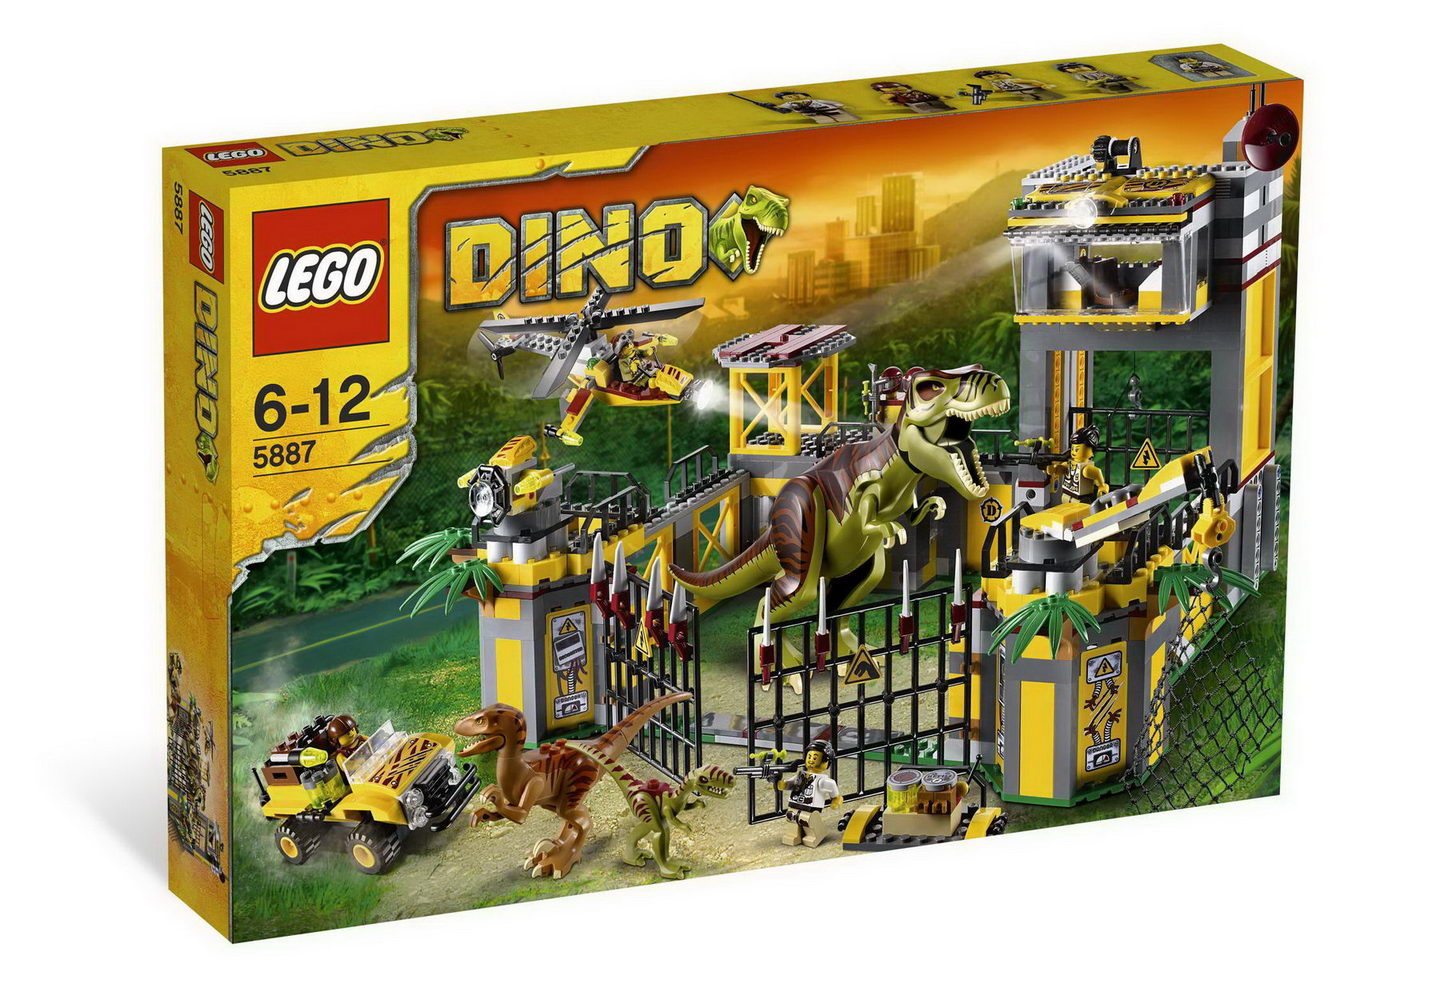 crane toys r us with Set Database Lego 5887 Dino Defense Hq on HYSKATE JUNIOR Softboot Inliner 237912 furthermore Details furthermore Sei military others in addition 330026 as well Product detail.